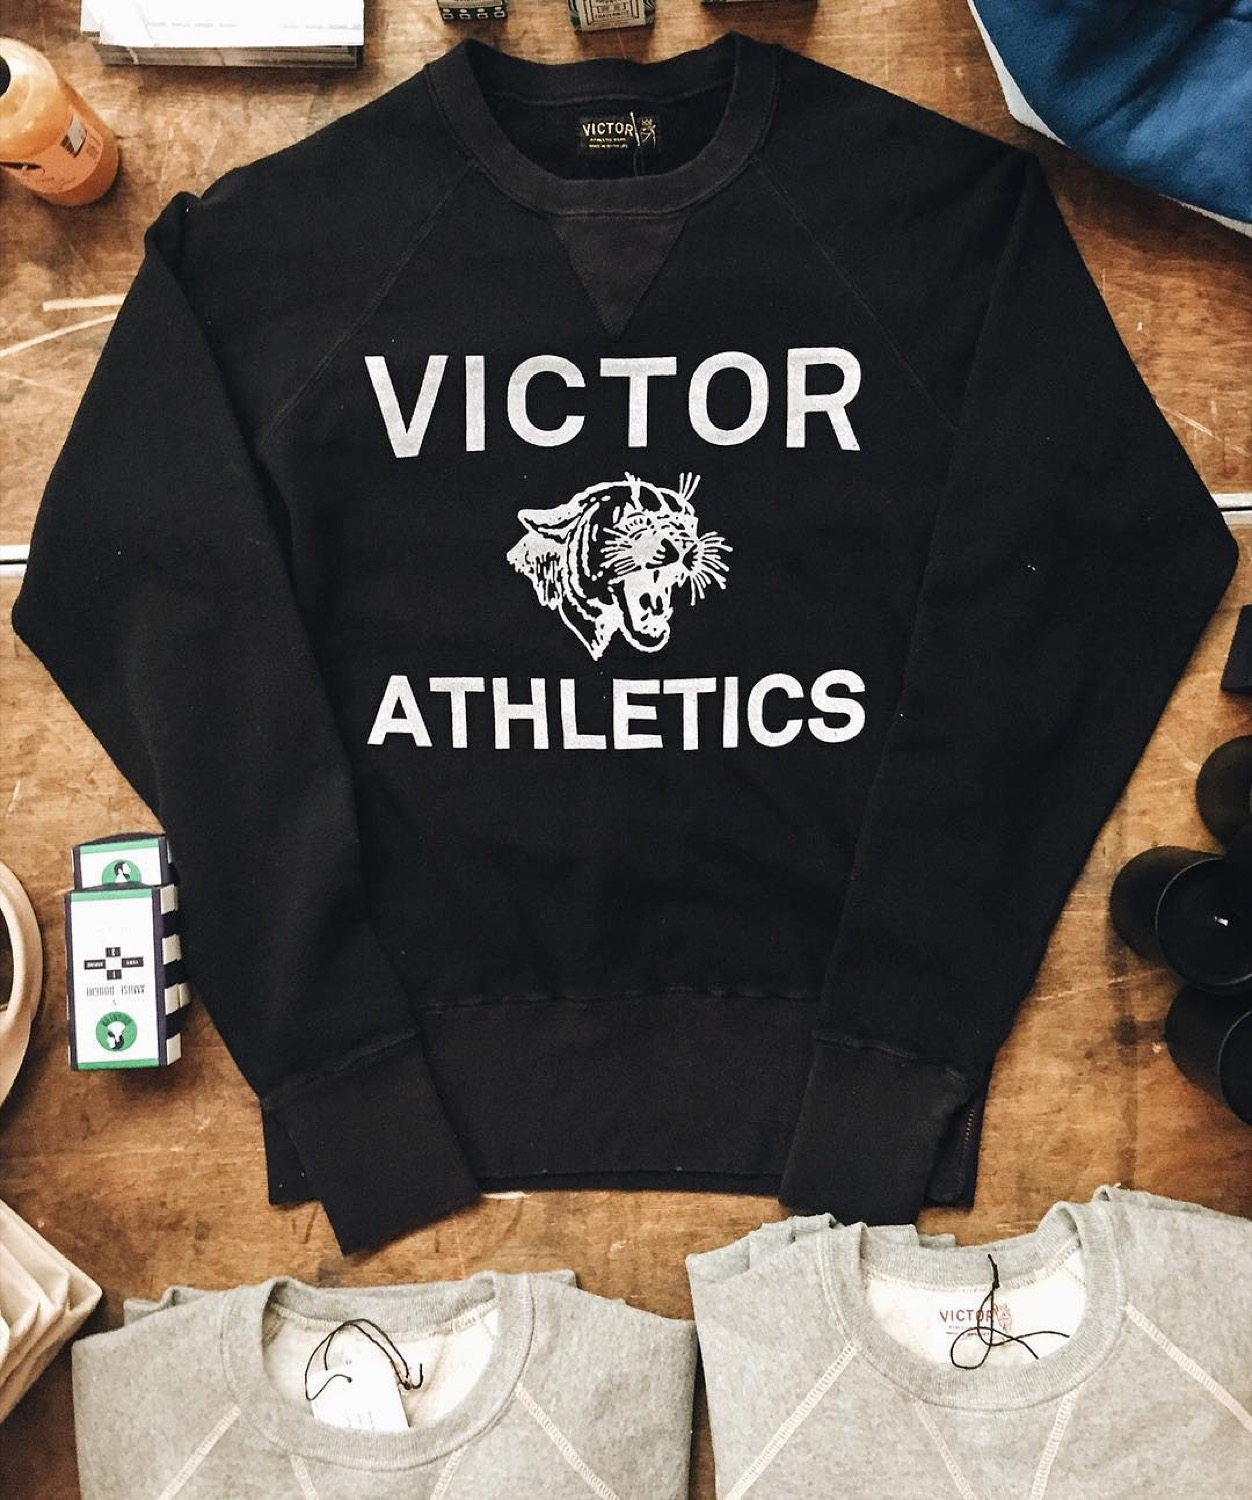 VICTOR ATHLETICS CLUB / Victor is a socially conscious brand that does socially conscious things. They make their clothing in the USA, and they use organic fabrics too. / ADDRESS: 1405 Republic Street, OTR / Image courtesy of Victor Athletics Club // Published: 3.15.17